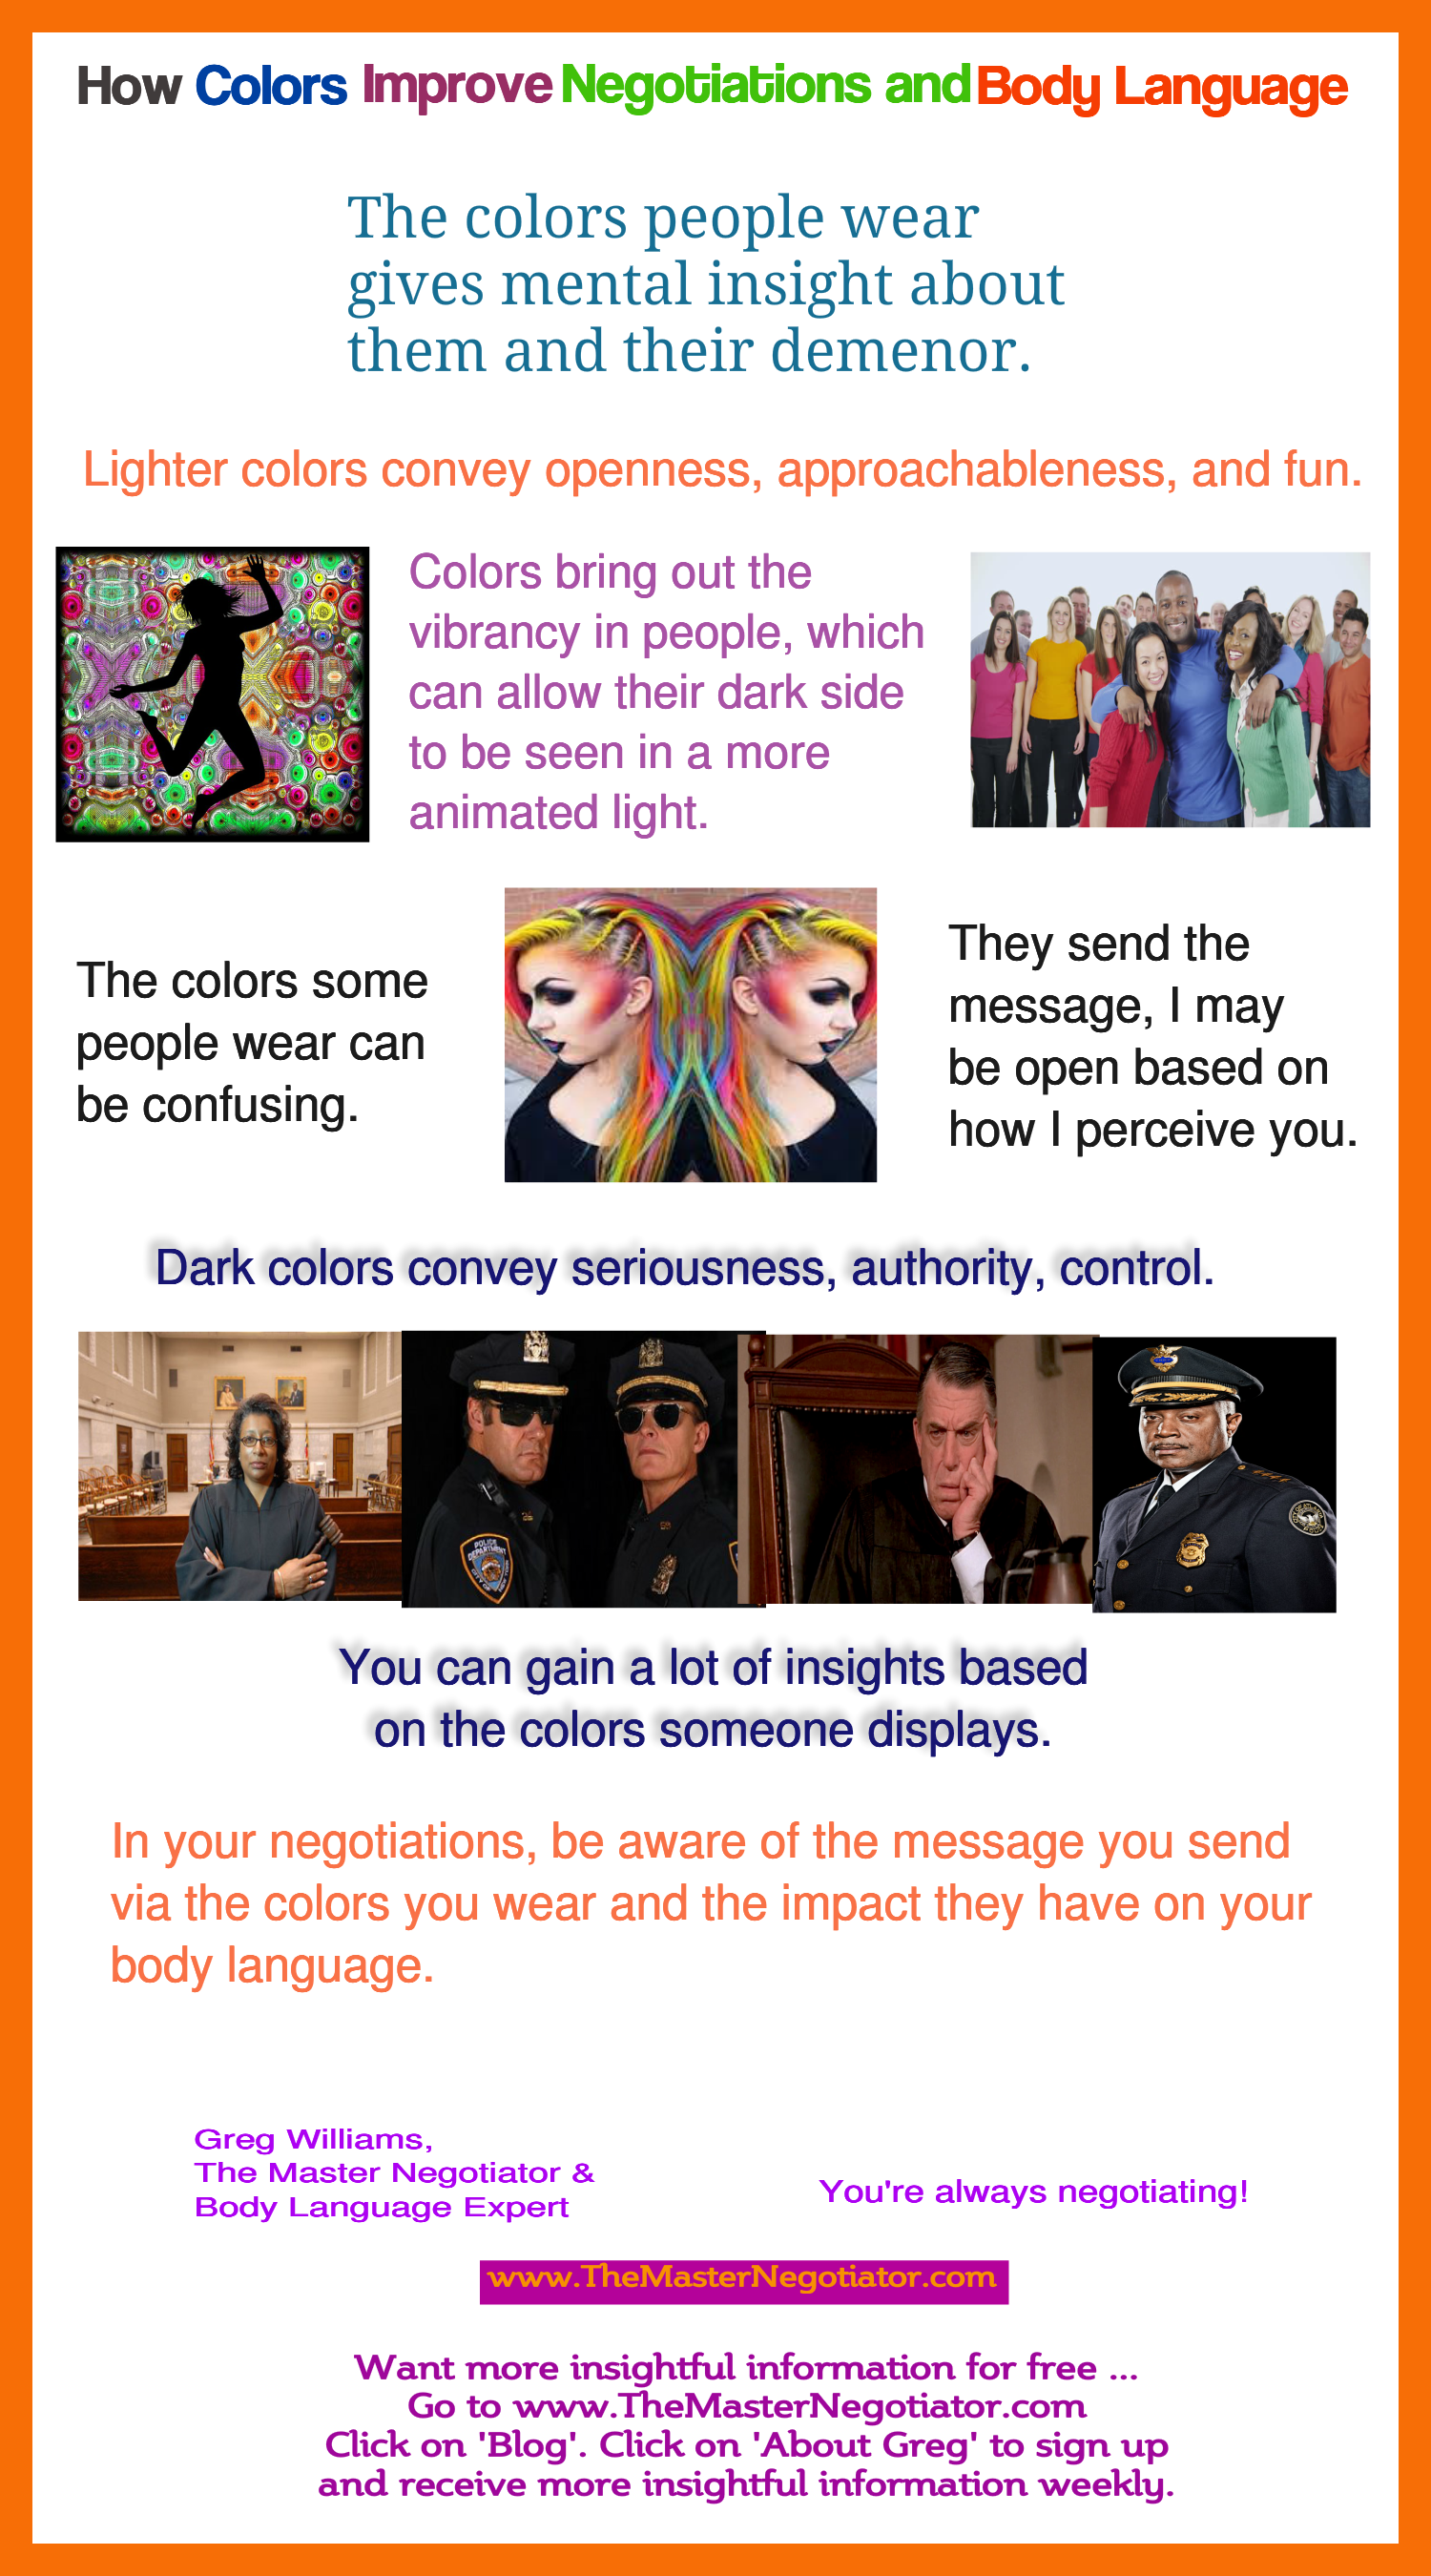 How Colors Improve Negotiations and Body Language